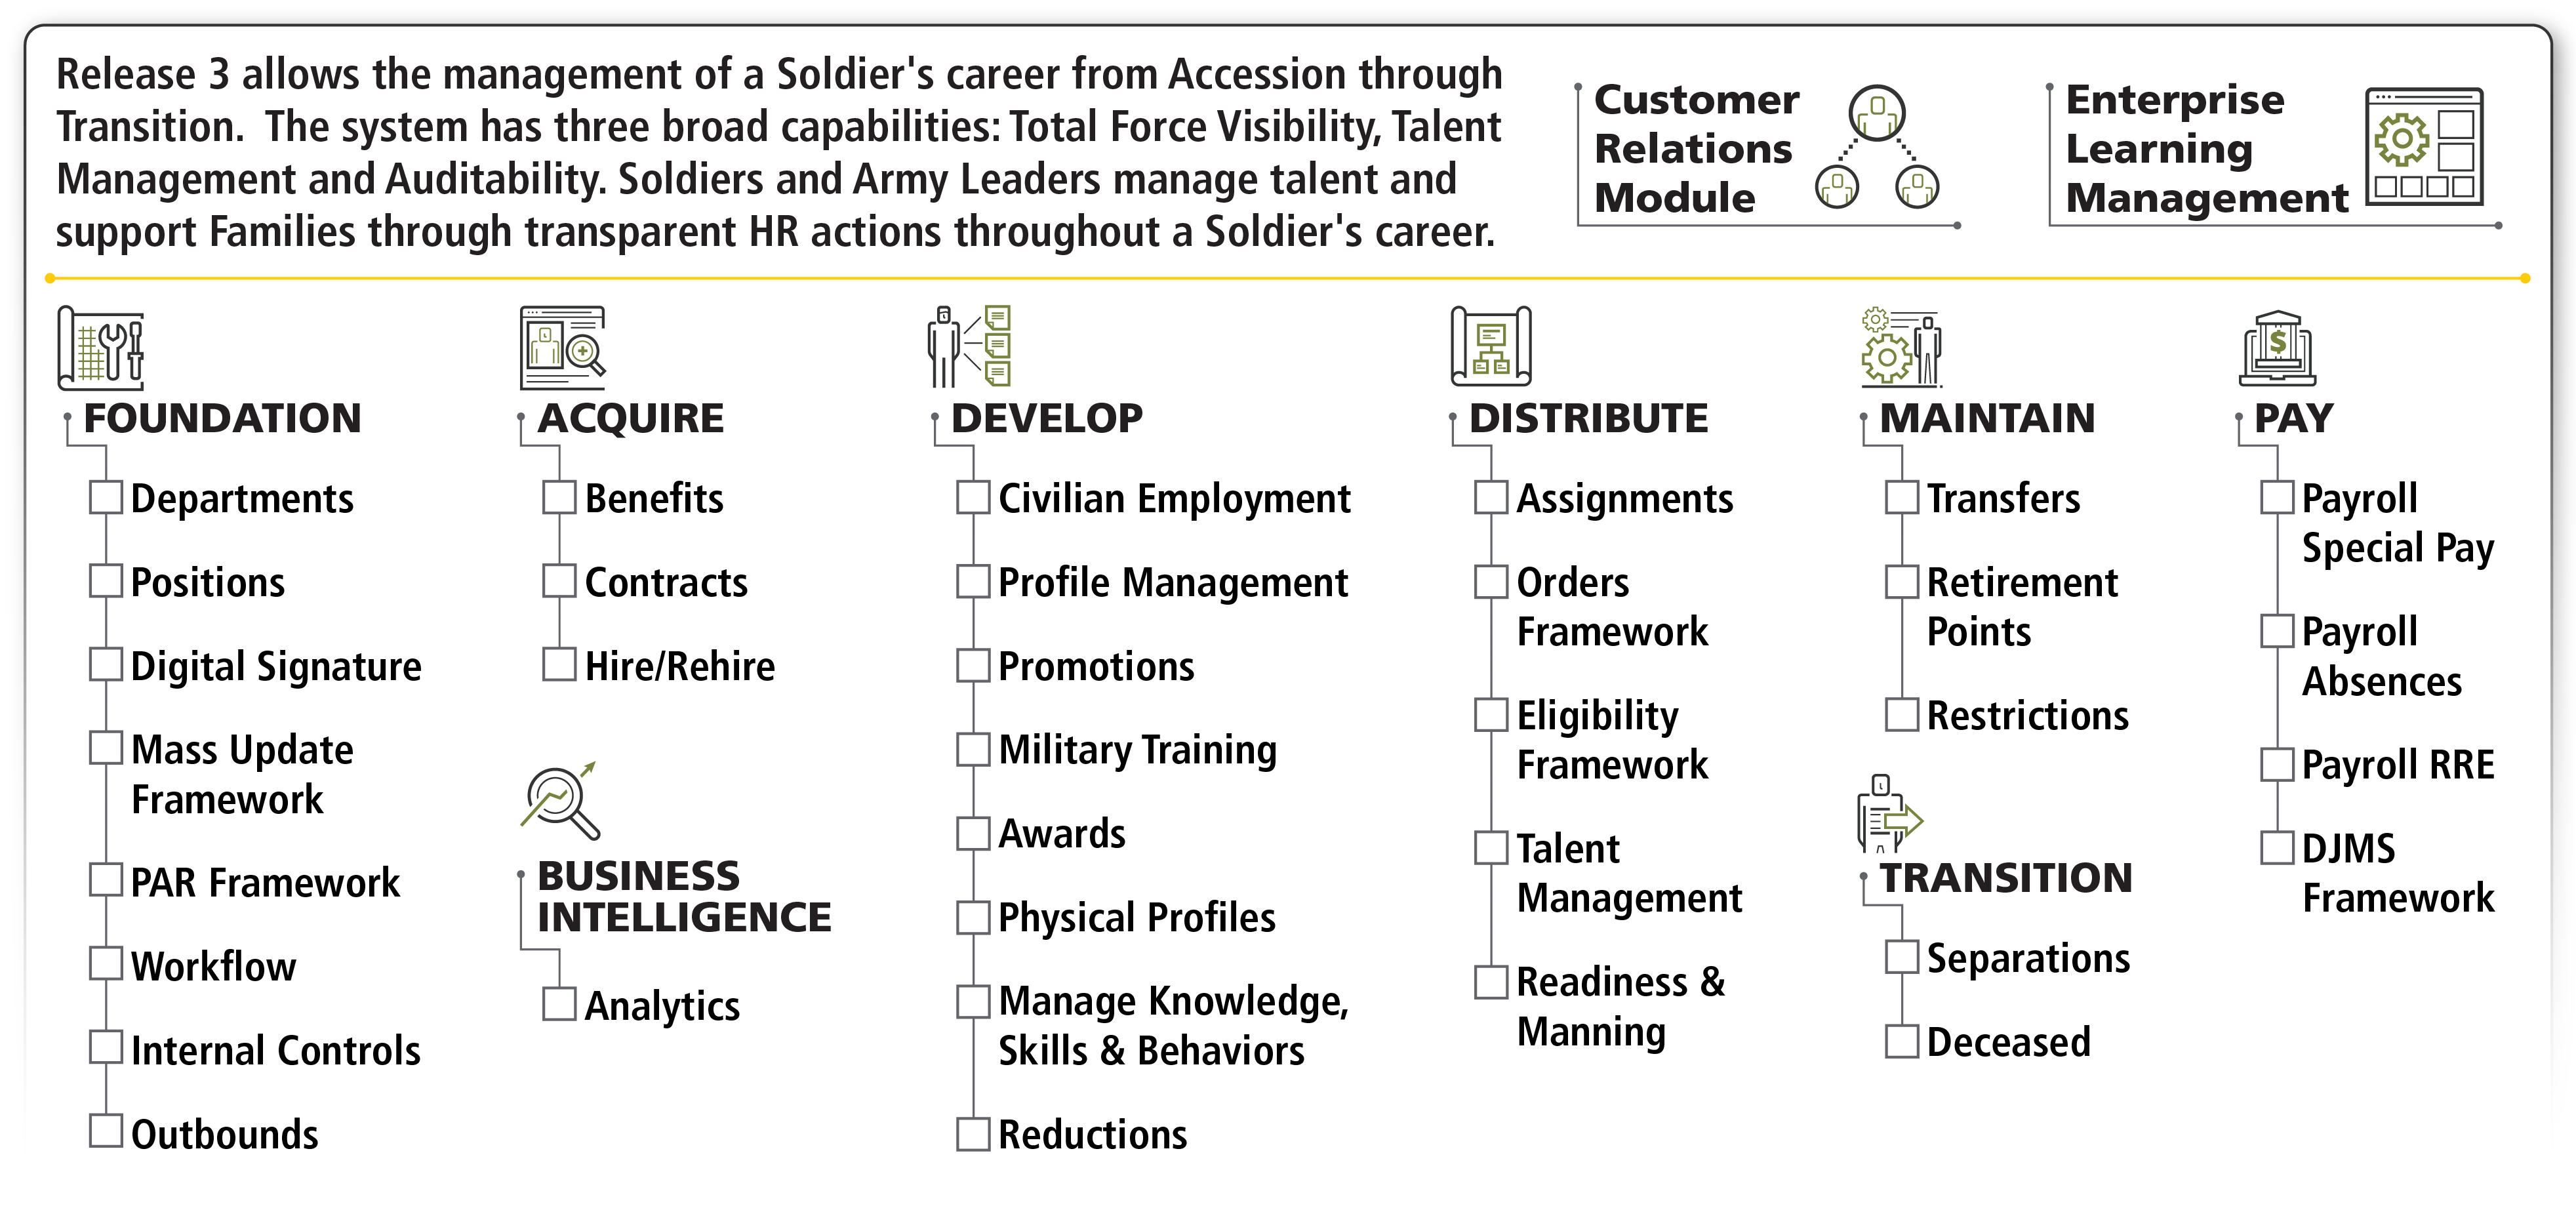 Graphic: Release 3 allows the management of a Soldier's career from Accession through Transition. The system has three broad capabilities: Total Force Visibility, Talent Management and Auditability. Soldiers and Army Leaders manage talent and support Families through transparent HR actions throughout a Soldier's career.